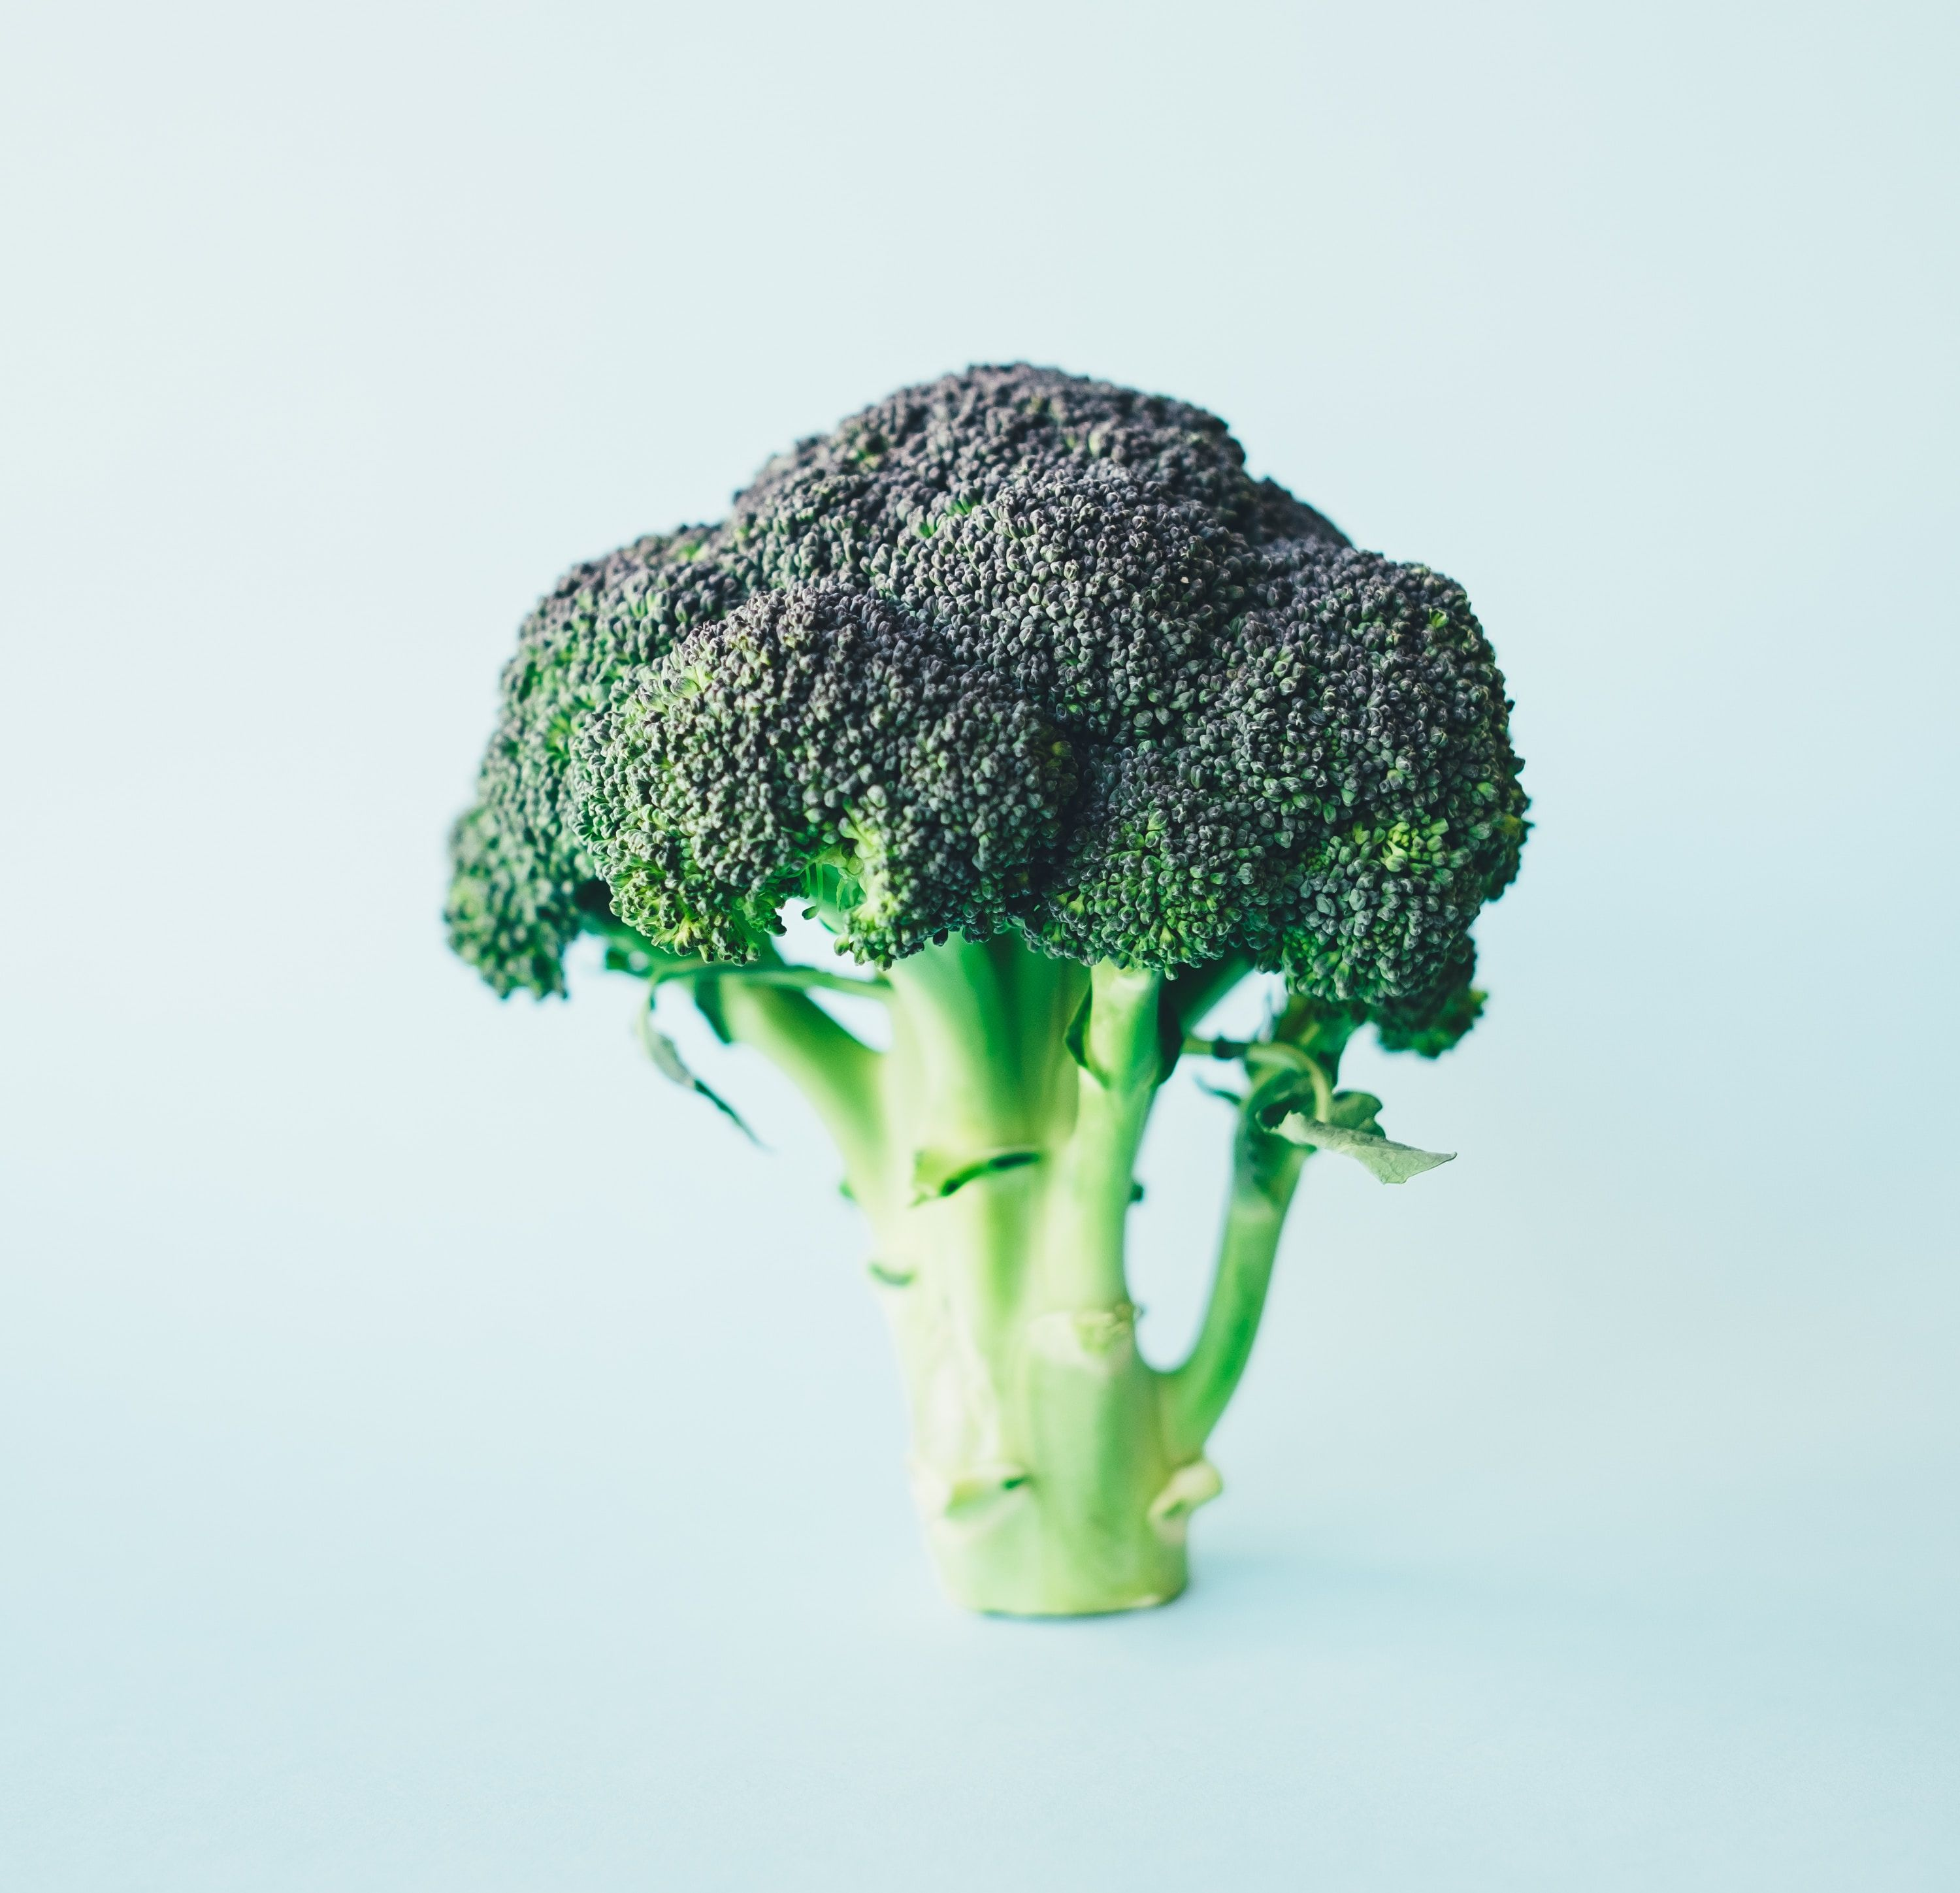 Broccoli annie spratt m1t rj1iciu unsplash